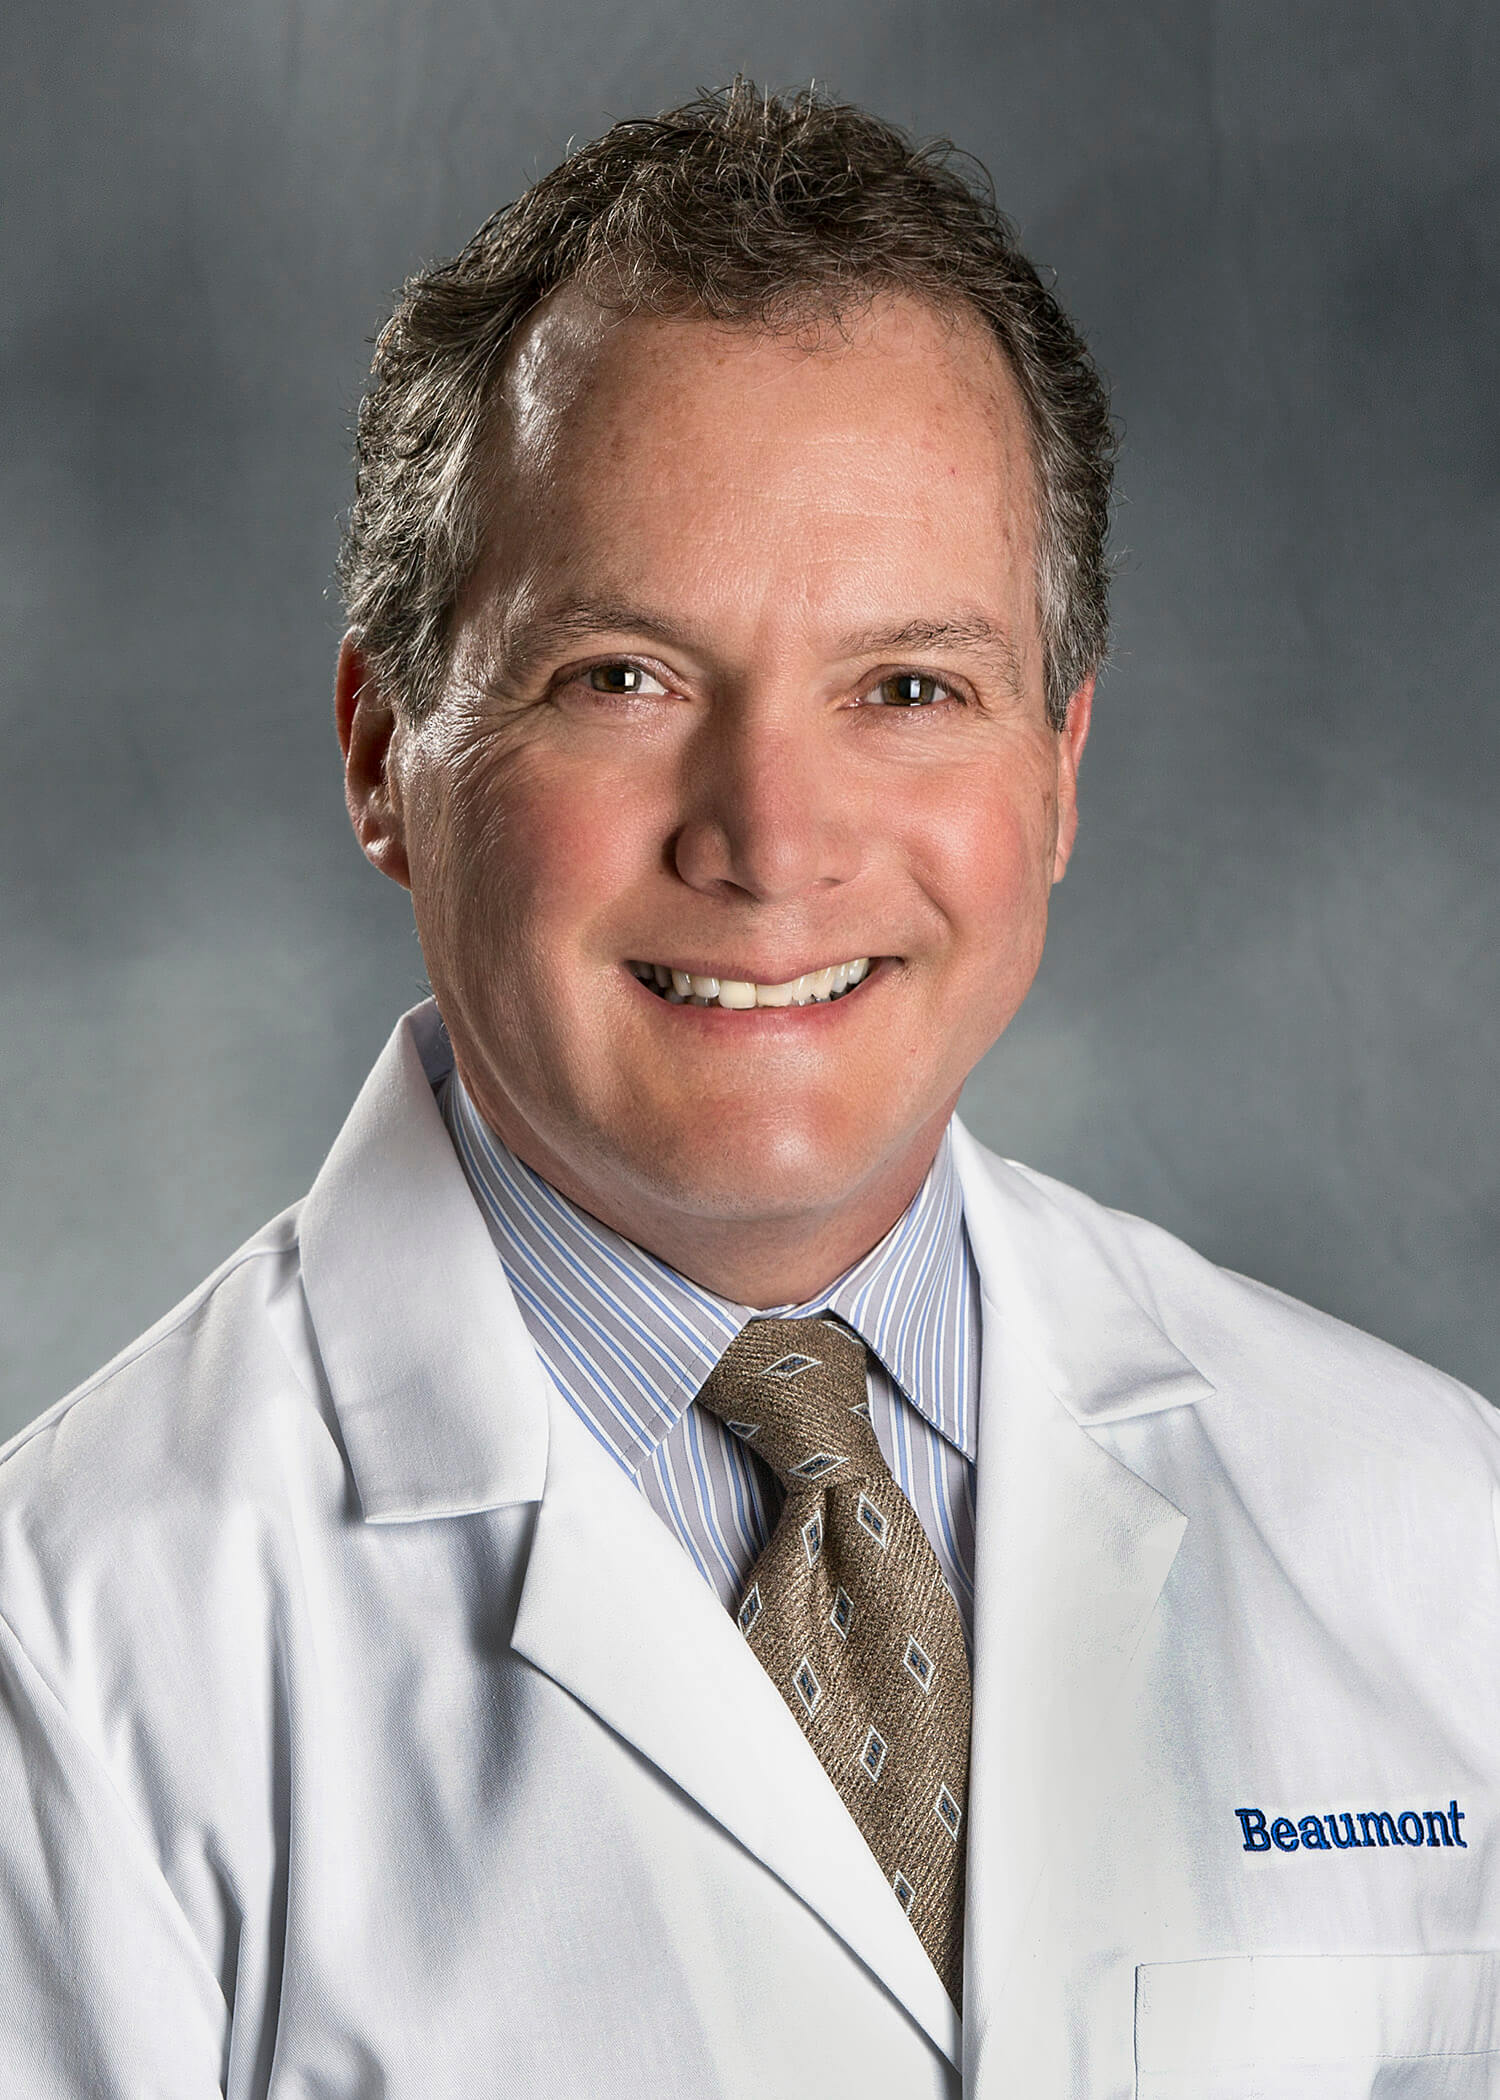 Orthopedic Surgeon Farmington Hills, MI - Tri County Orthopedics - Dr. Lennox